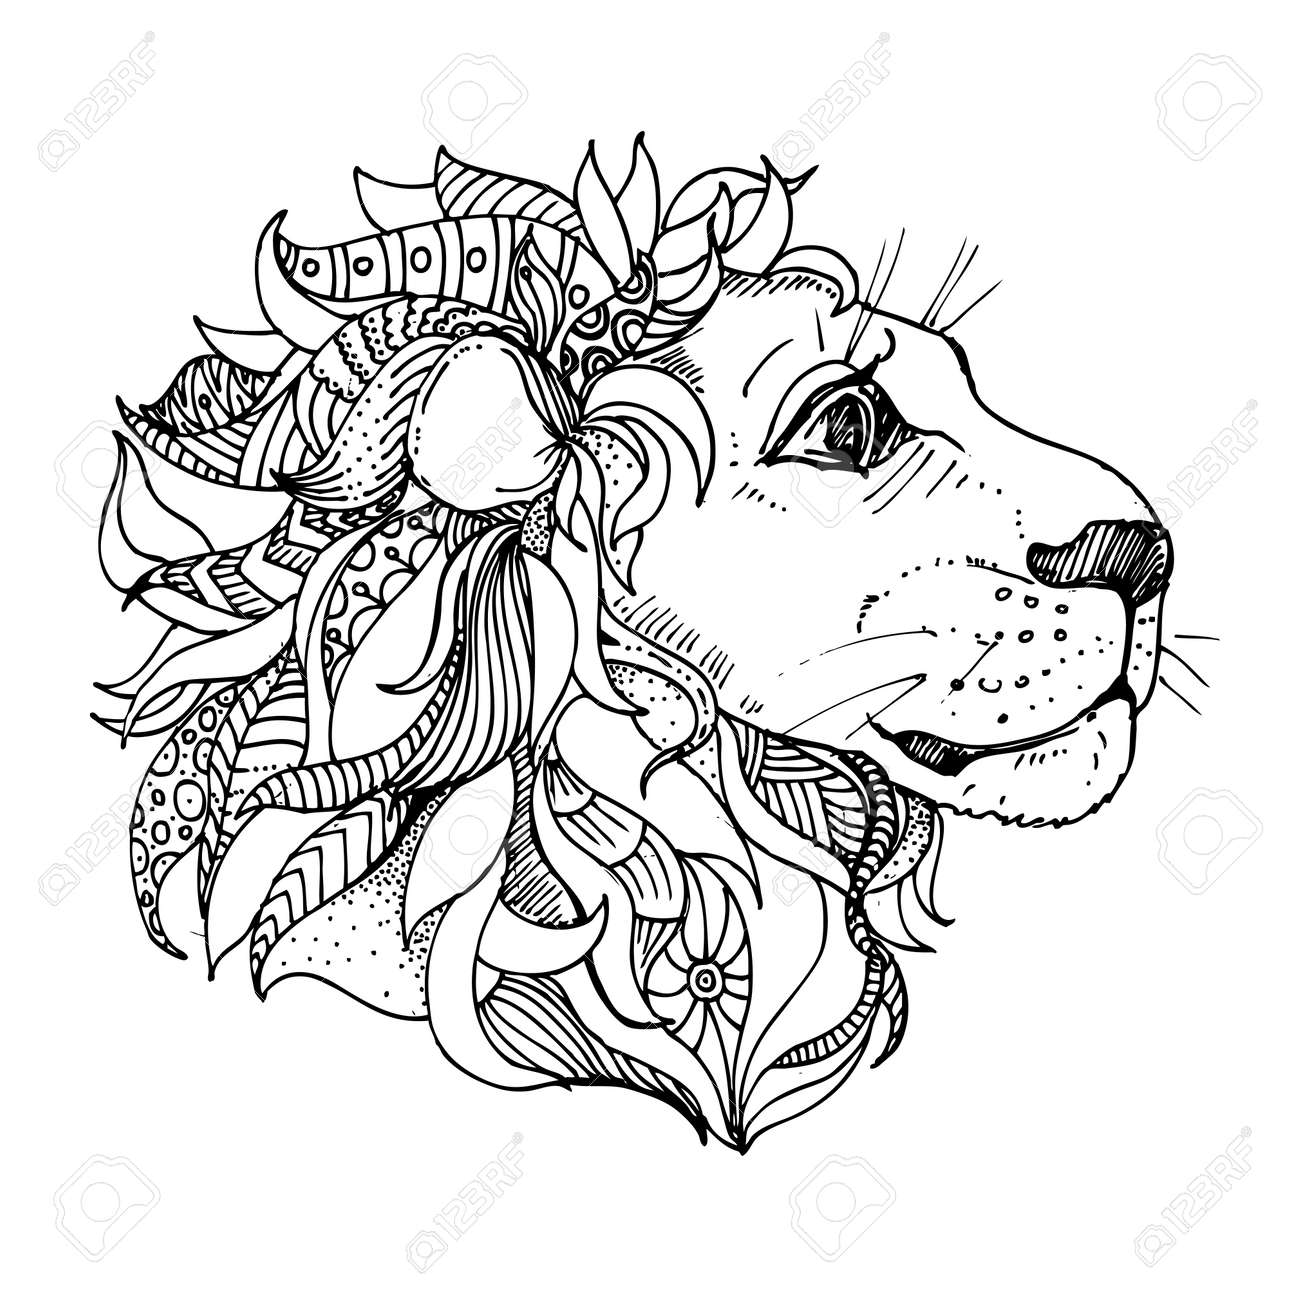 Hand Drawn Ink Doodle Lion On White Background. Coloring Page ...